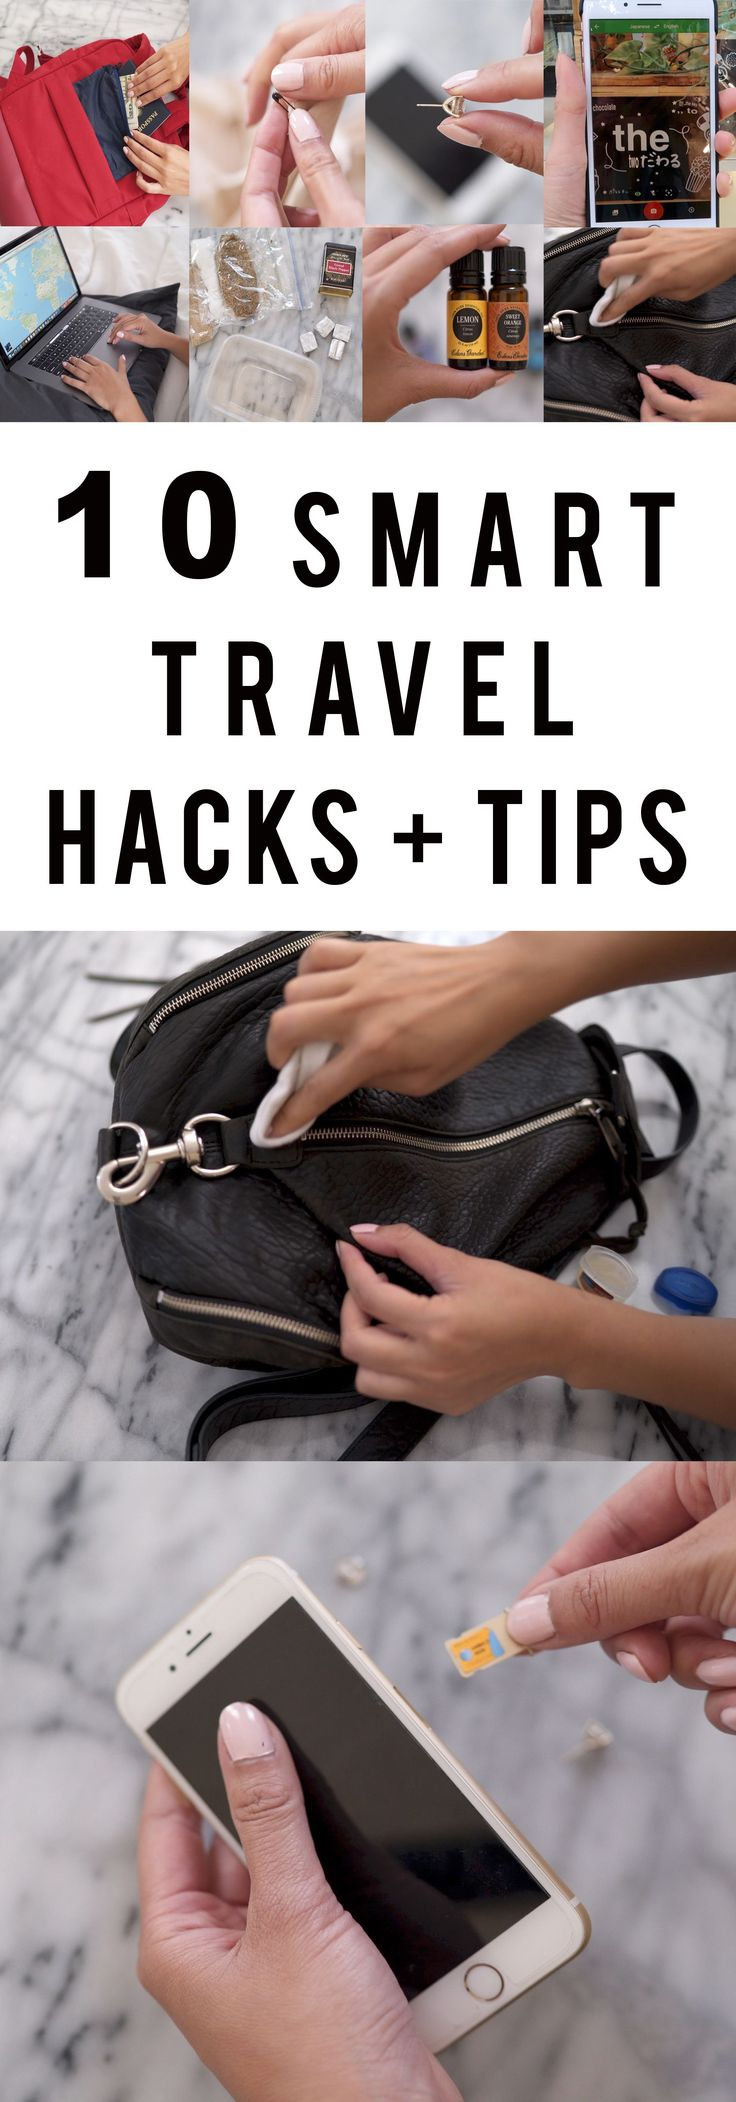 10 SMART TRAVEL HACKS + TIPS | SUMMER 2017 – Ann Le Style